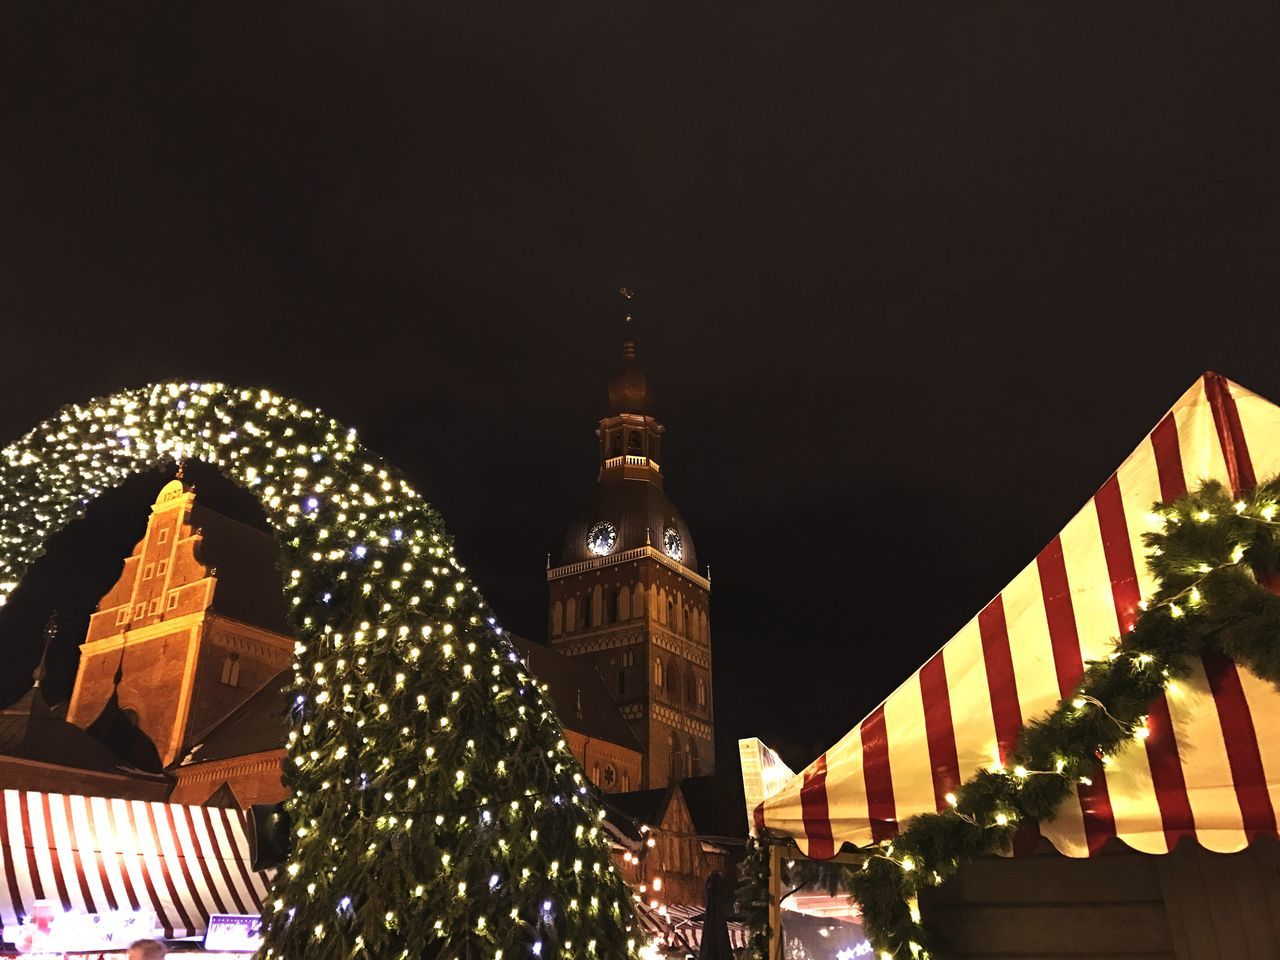 Night Architecture Illuminated Built Structure Building Exterior Christmas City No People Low Angle View Outdoors Sky Christmas Decoration Christmas Tree Christmas Lights Christmas Spirit Christmas Market Riga Riga Latvia